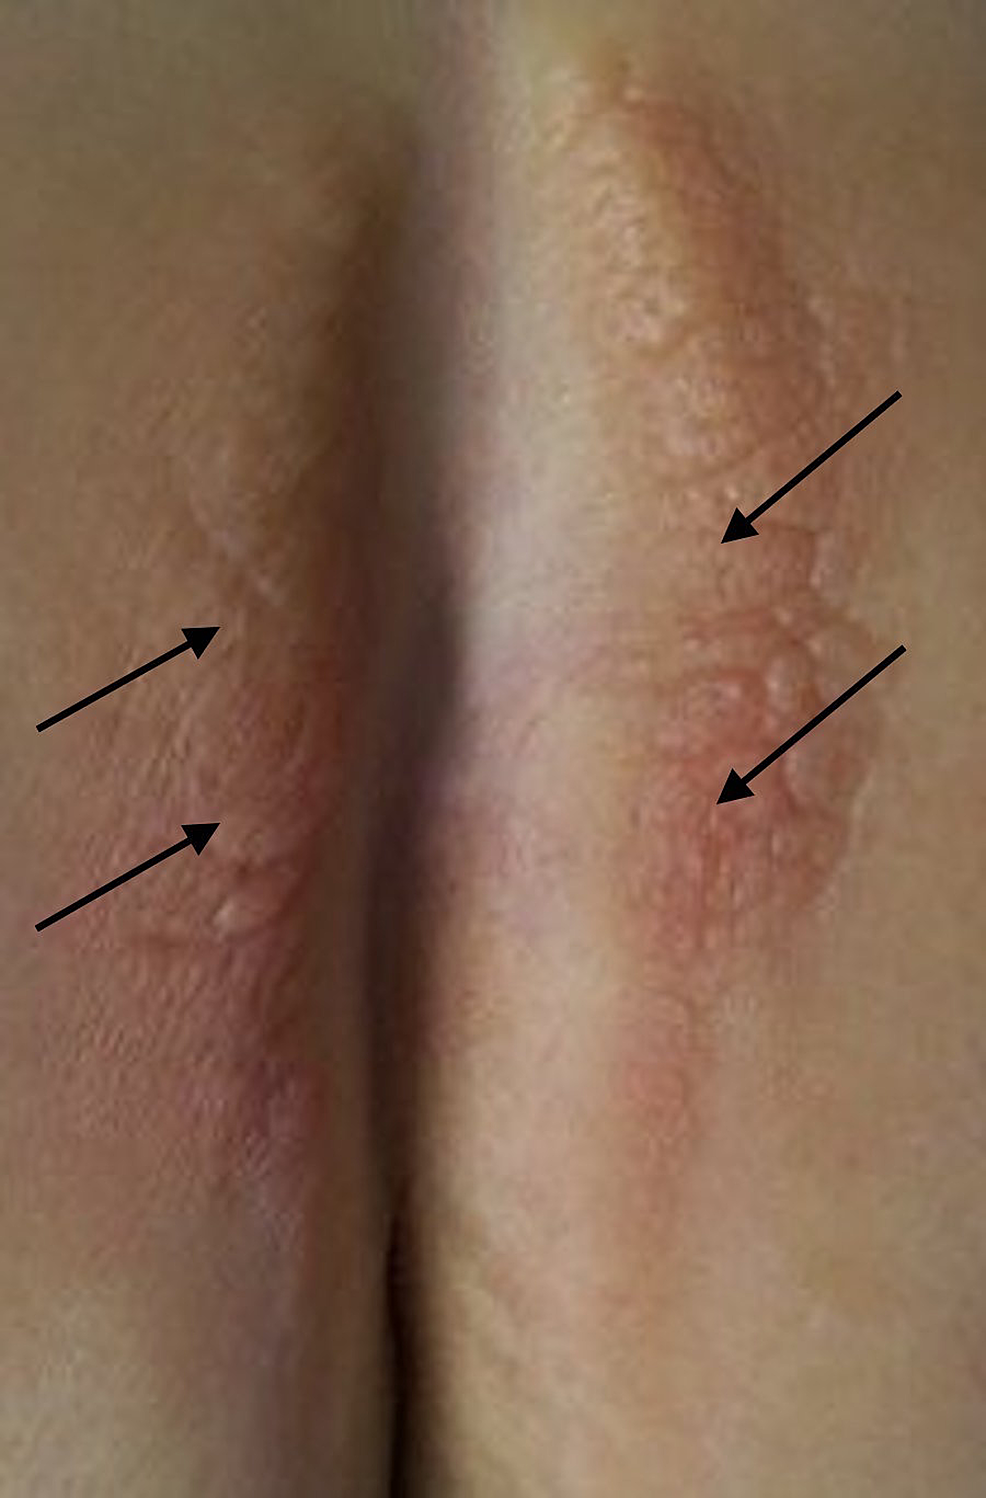 Granulomatous-reaction-on-the-buttocks-at-the-site-of-the-silicone-injections